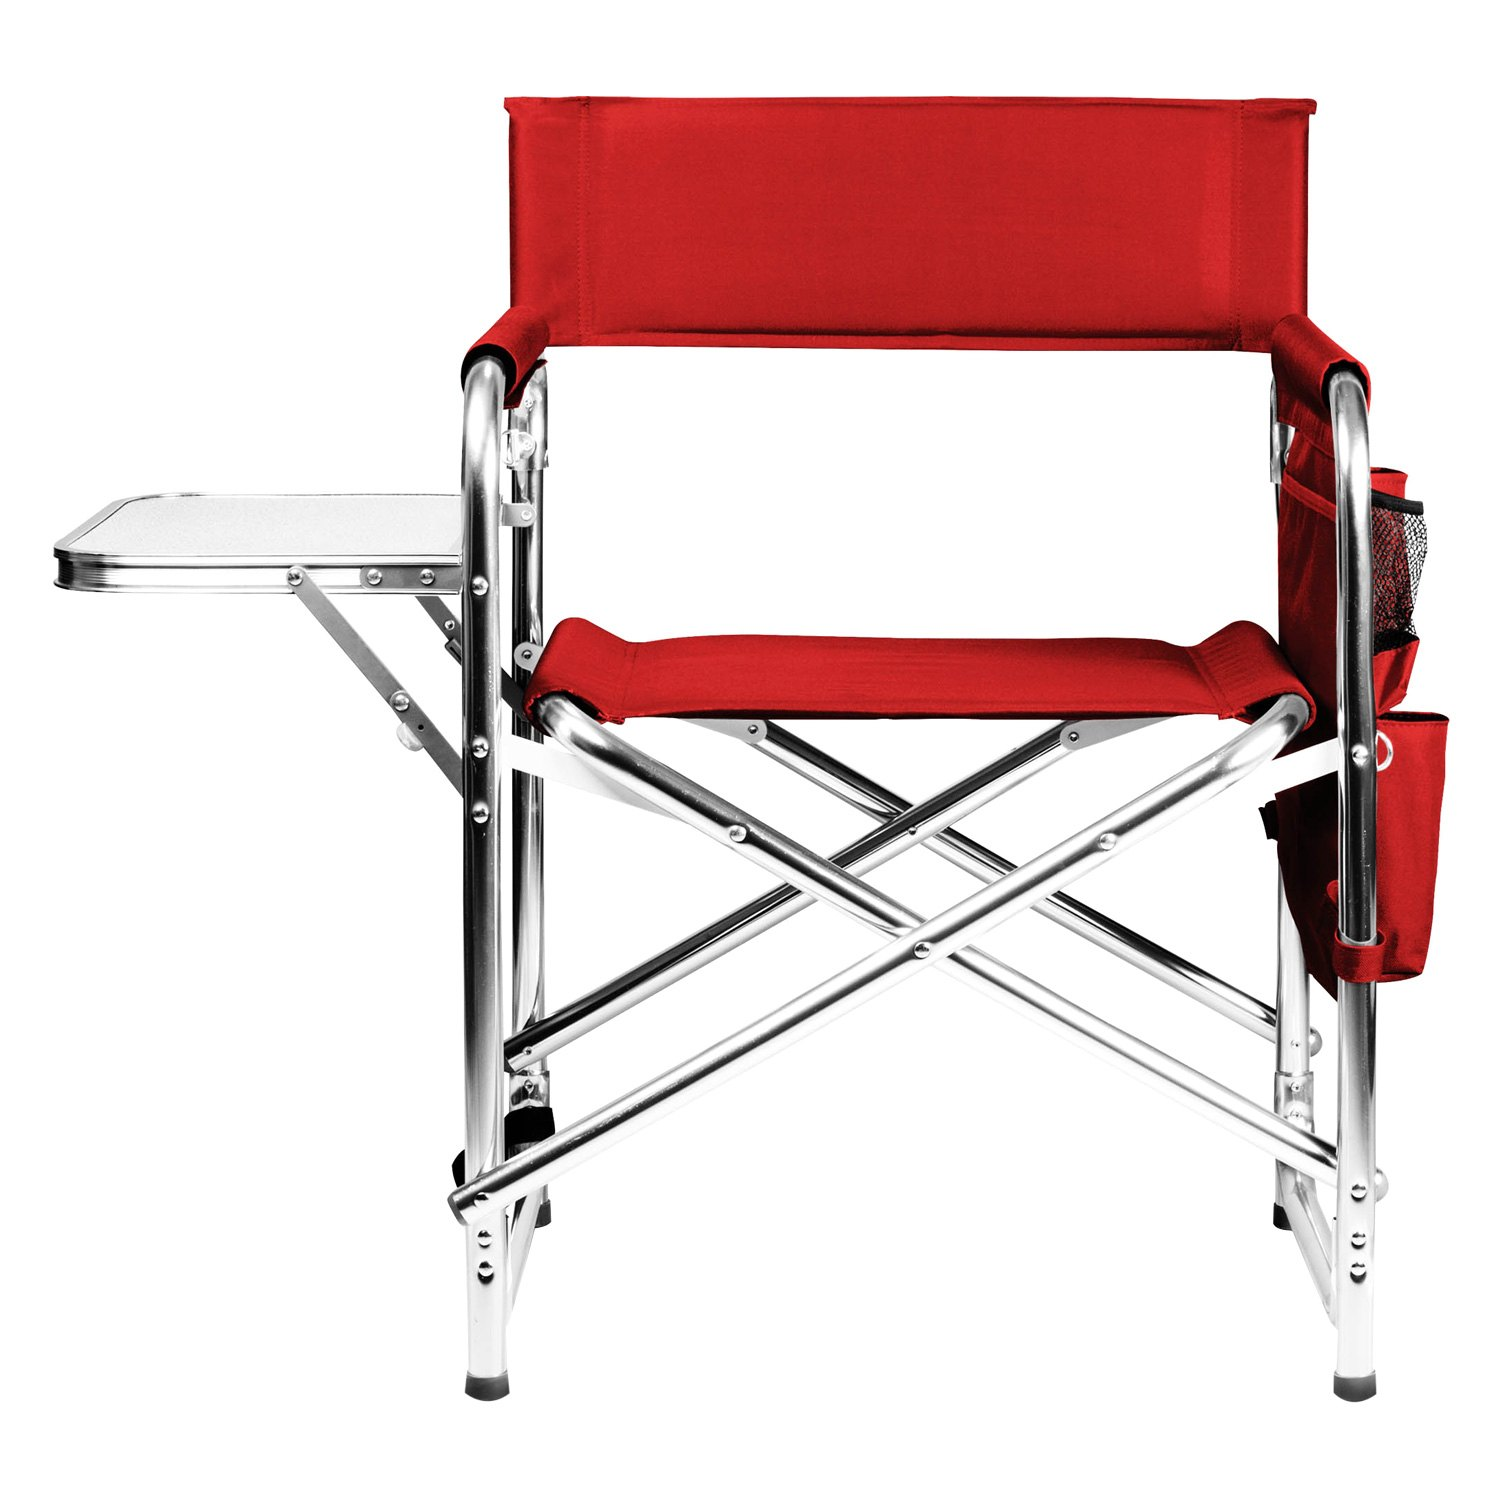 picnic time chairs revolving chair small coca cola sports recreationid